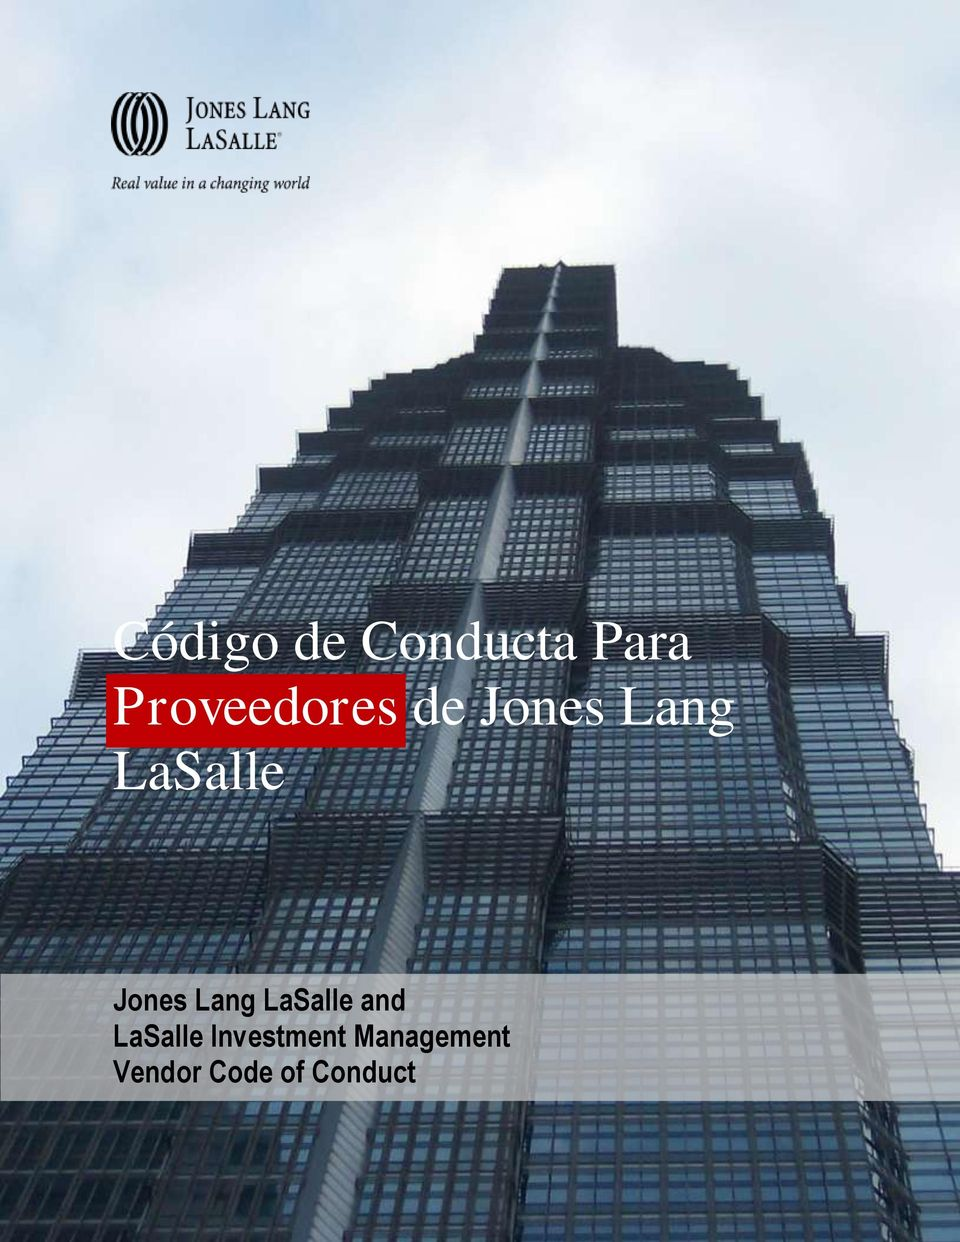 Jones Lang LaSalle and LaSalle